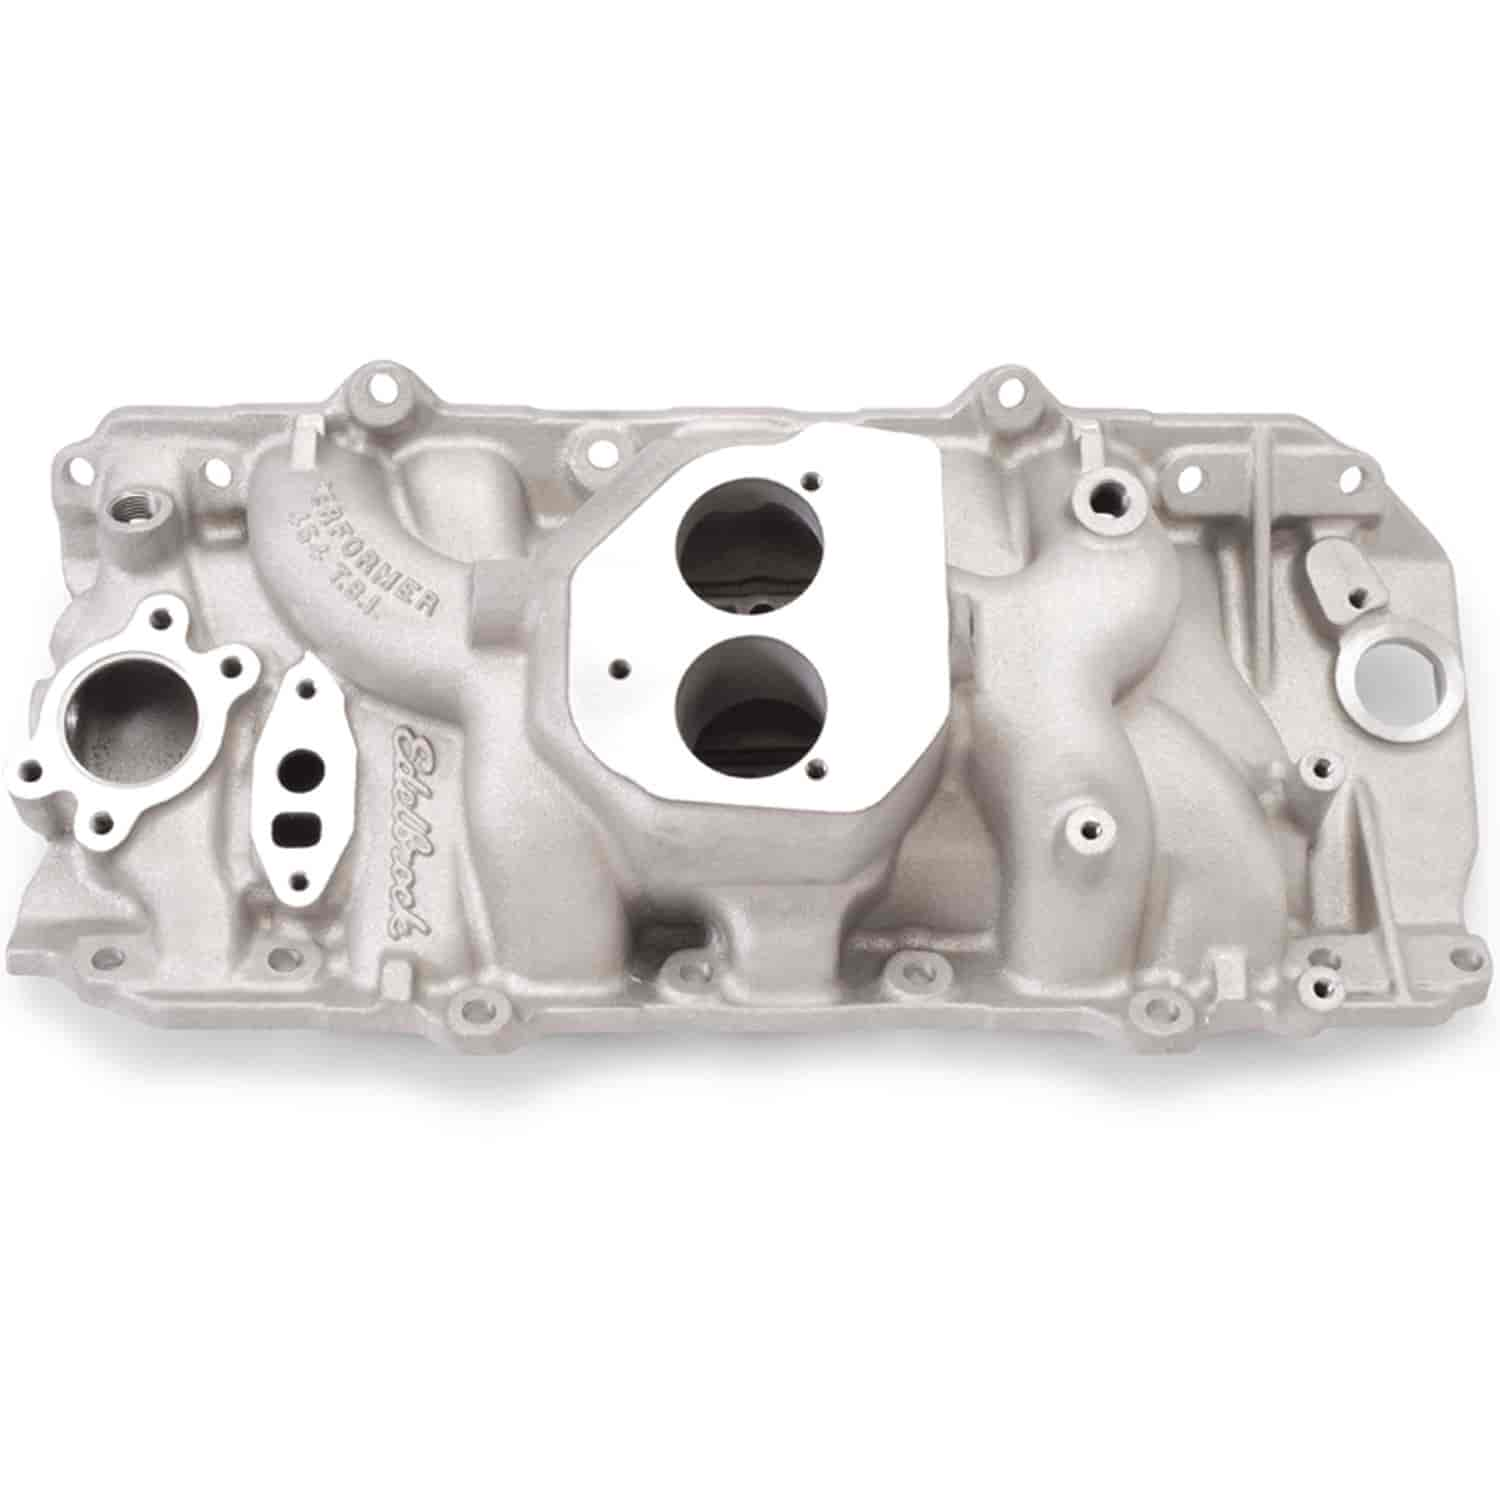 hight resolution of edelbrock performer 454 t b i big block chevy intake manifold